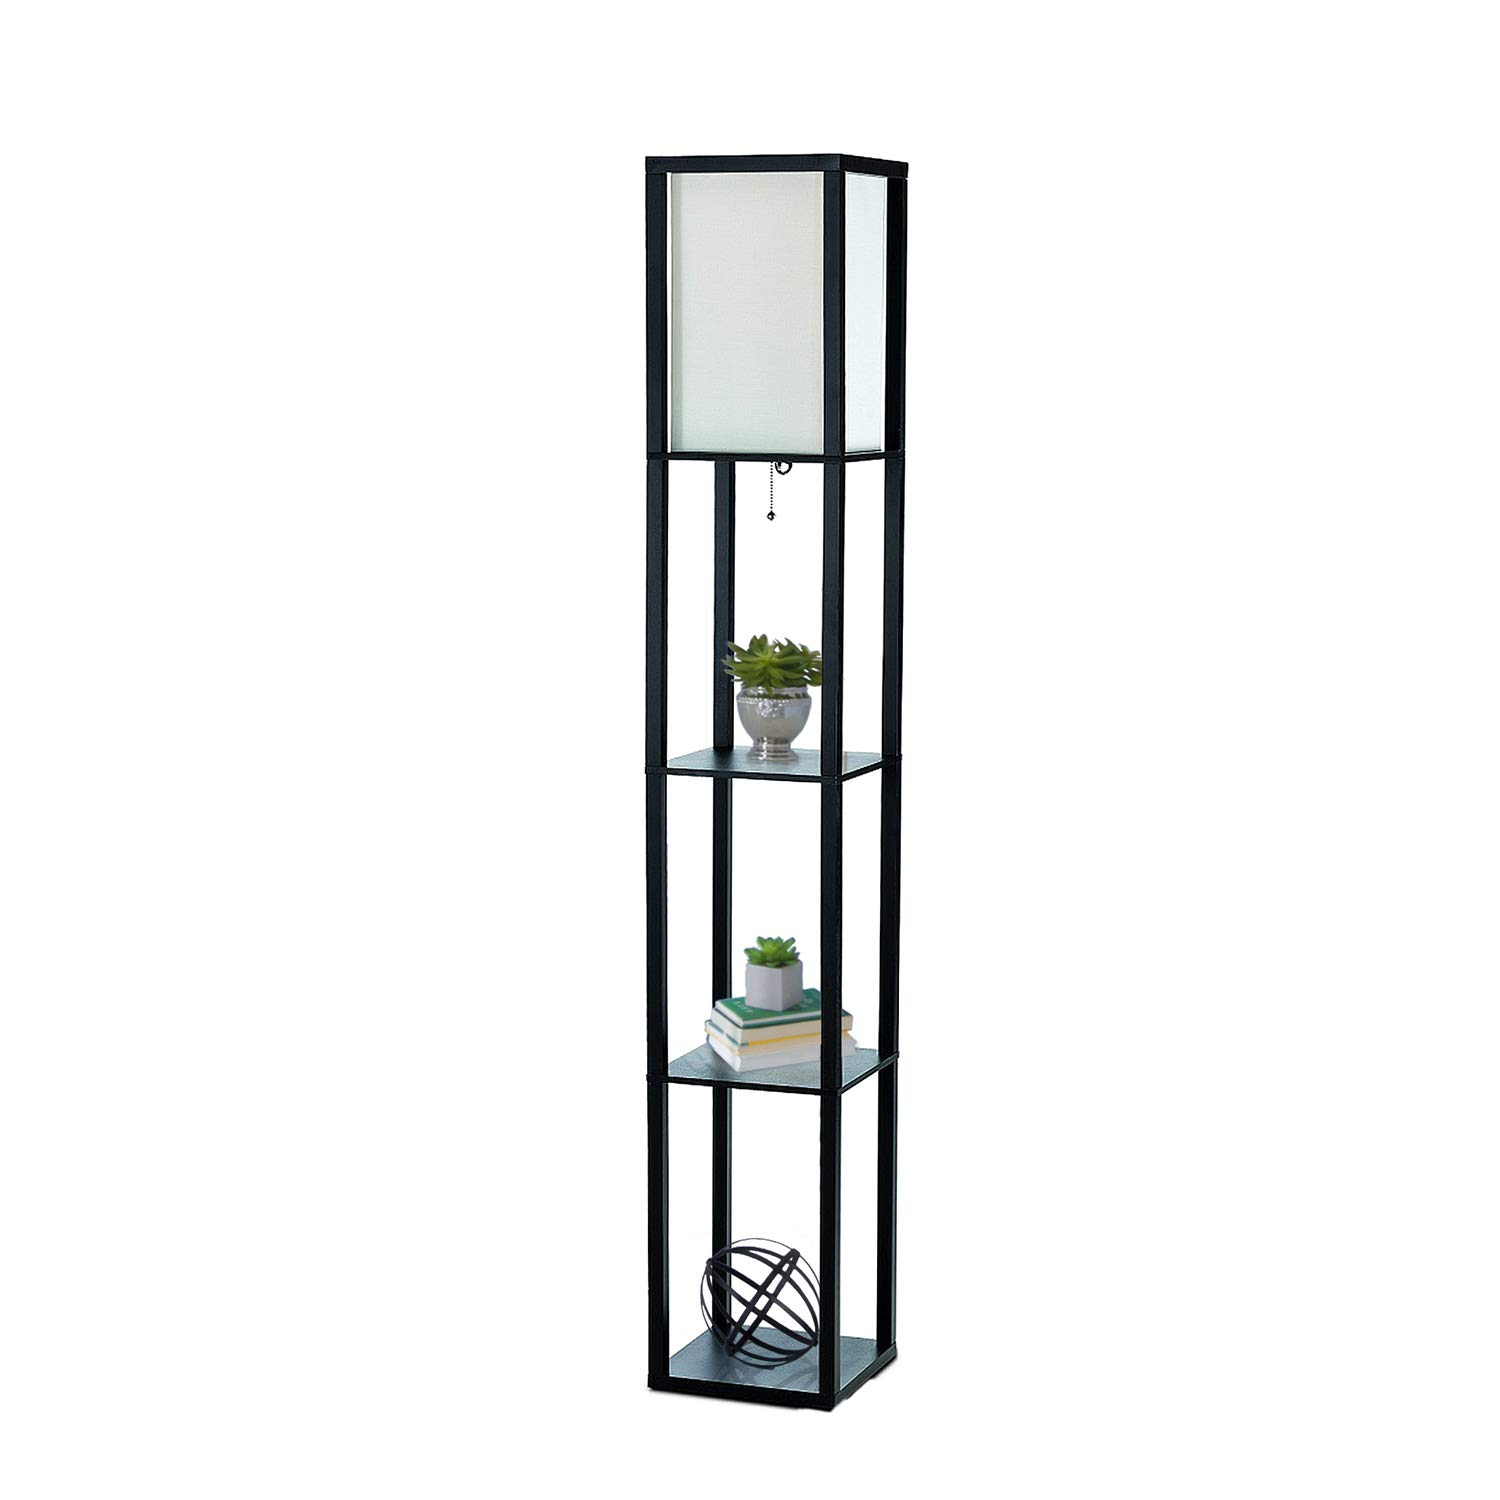 Simple Designs Home LF1014-BLK Etagere Organizer Storage Shelf Linen Shade Floor Lamp, Black by Simple Designs Home (Image #1)